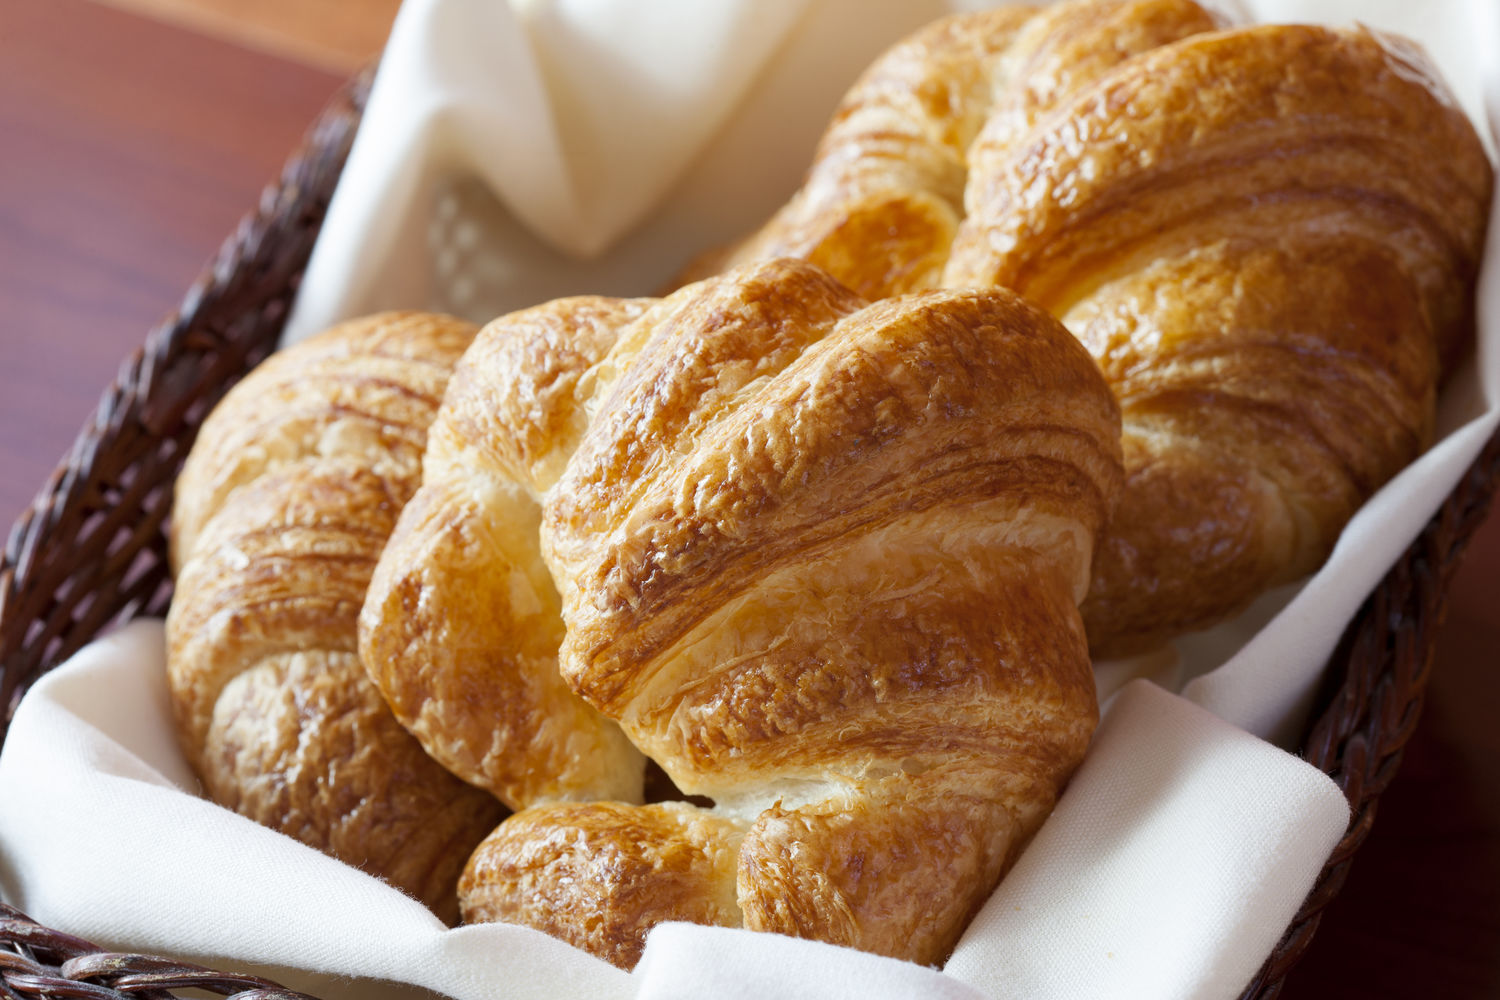 Praline Bakery and Bistro offers an array of baked goods, from butter croissants to lemon blueberry pound cake and tarts. (Courtesy: Praline Bakery and Bistro)